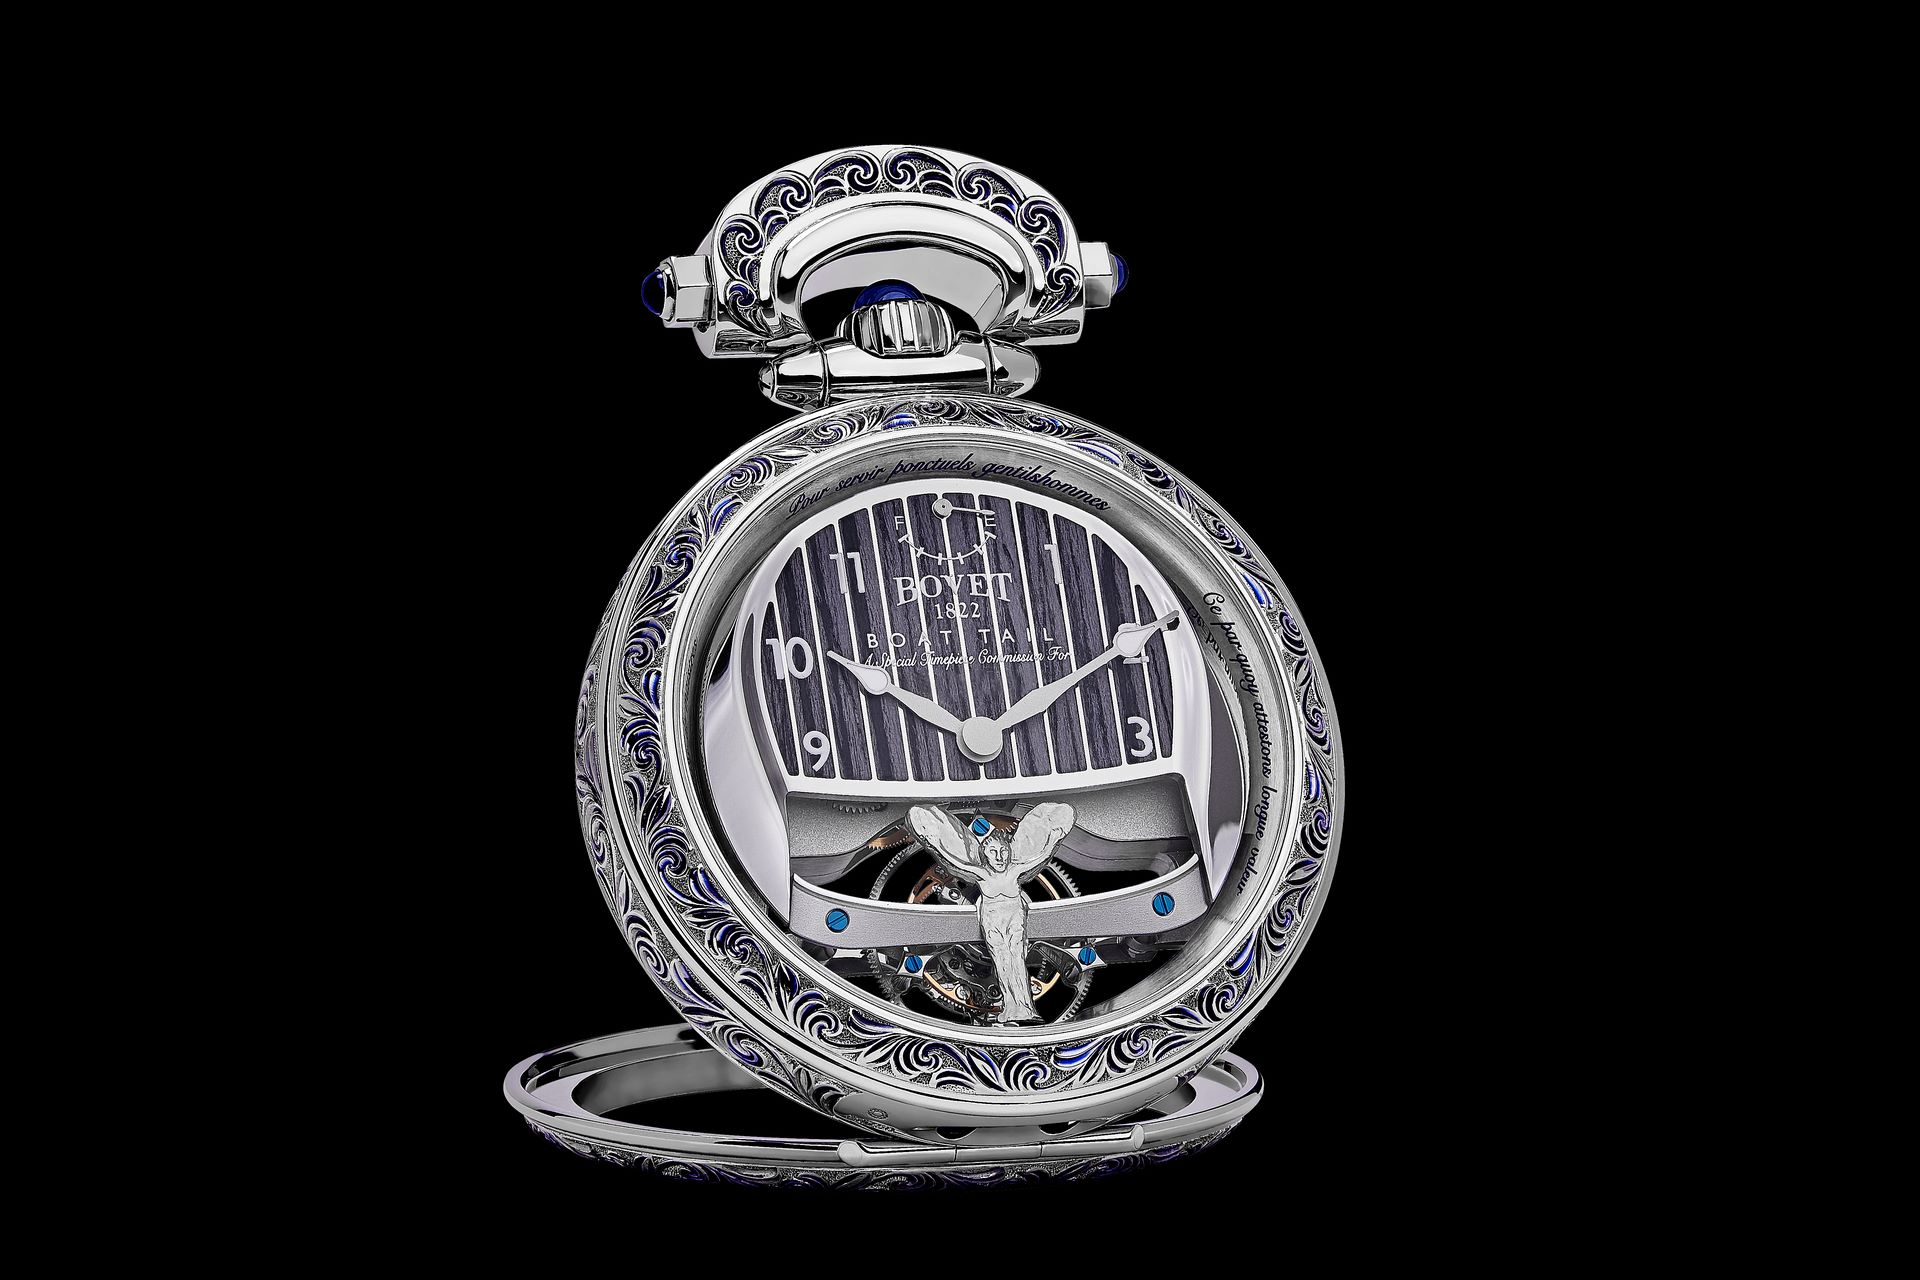 Rolls-Royce-Boat-Tail-Bovet-1822-Watches-8